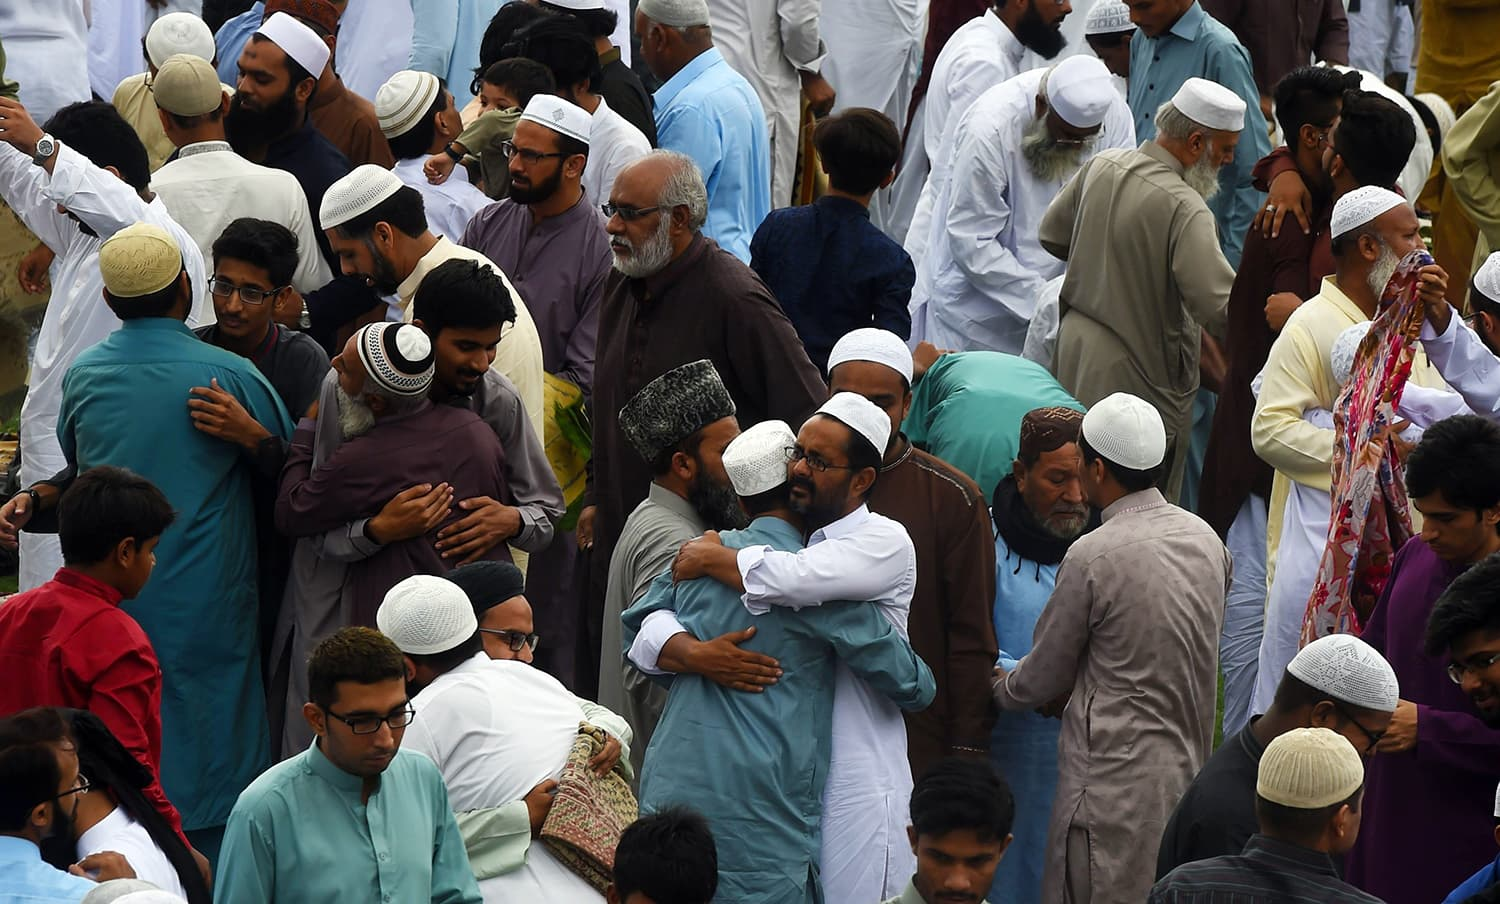 People exchange Eid greetings after offering Eidul Fitr prayers at an Eidgah ground in Karachi. — AFP